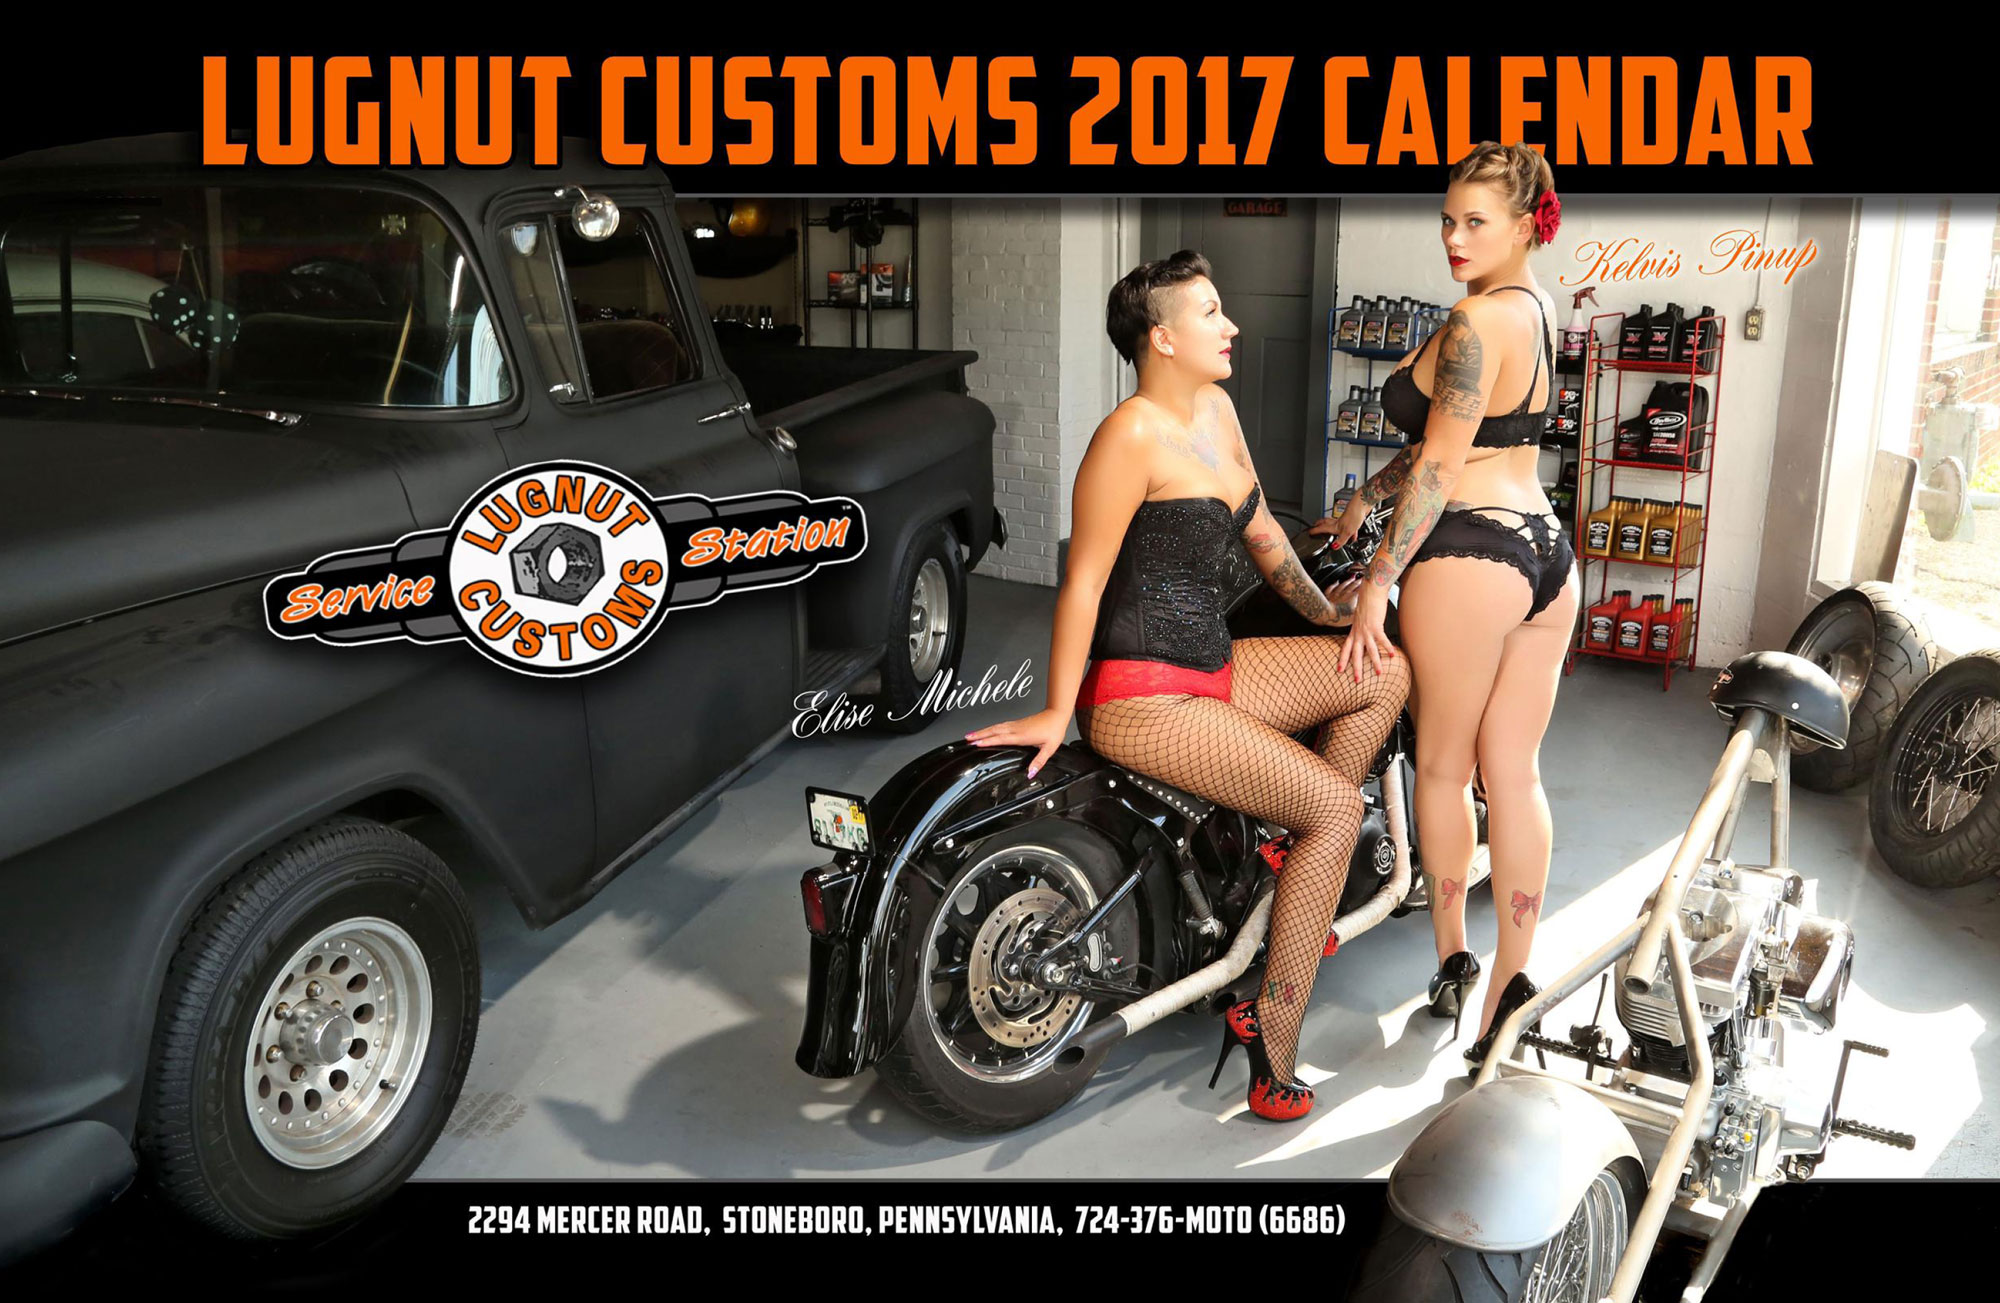 Lugnut Customs 0017 calendar